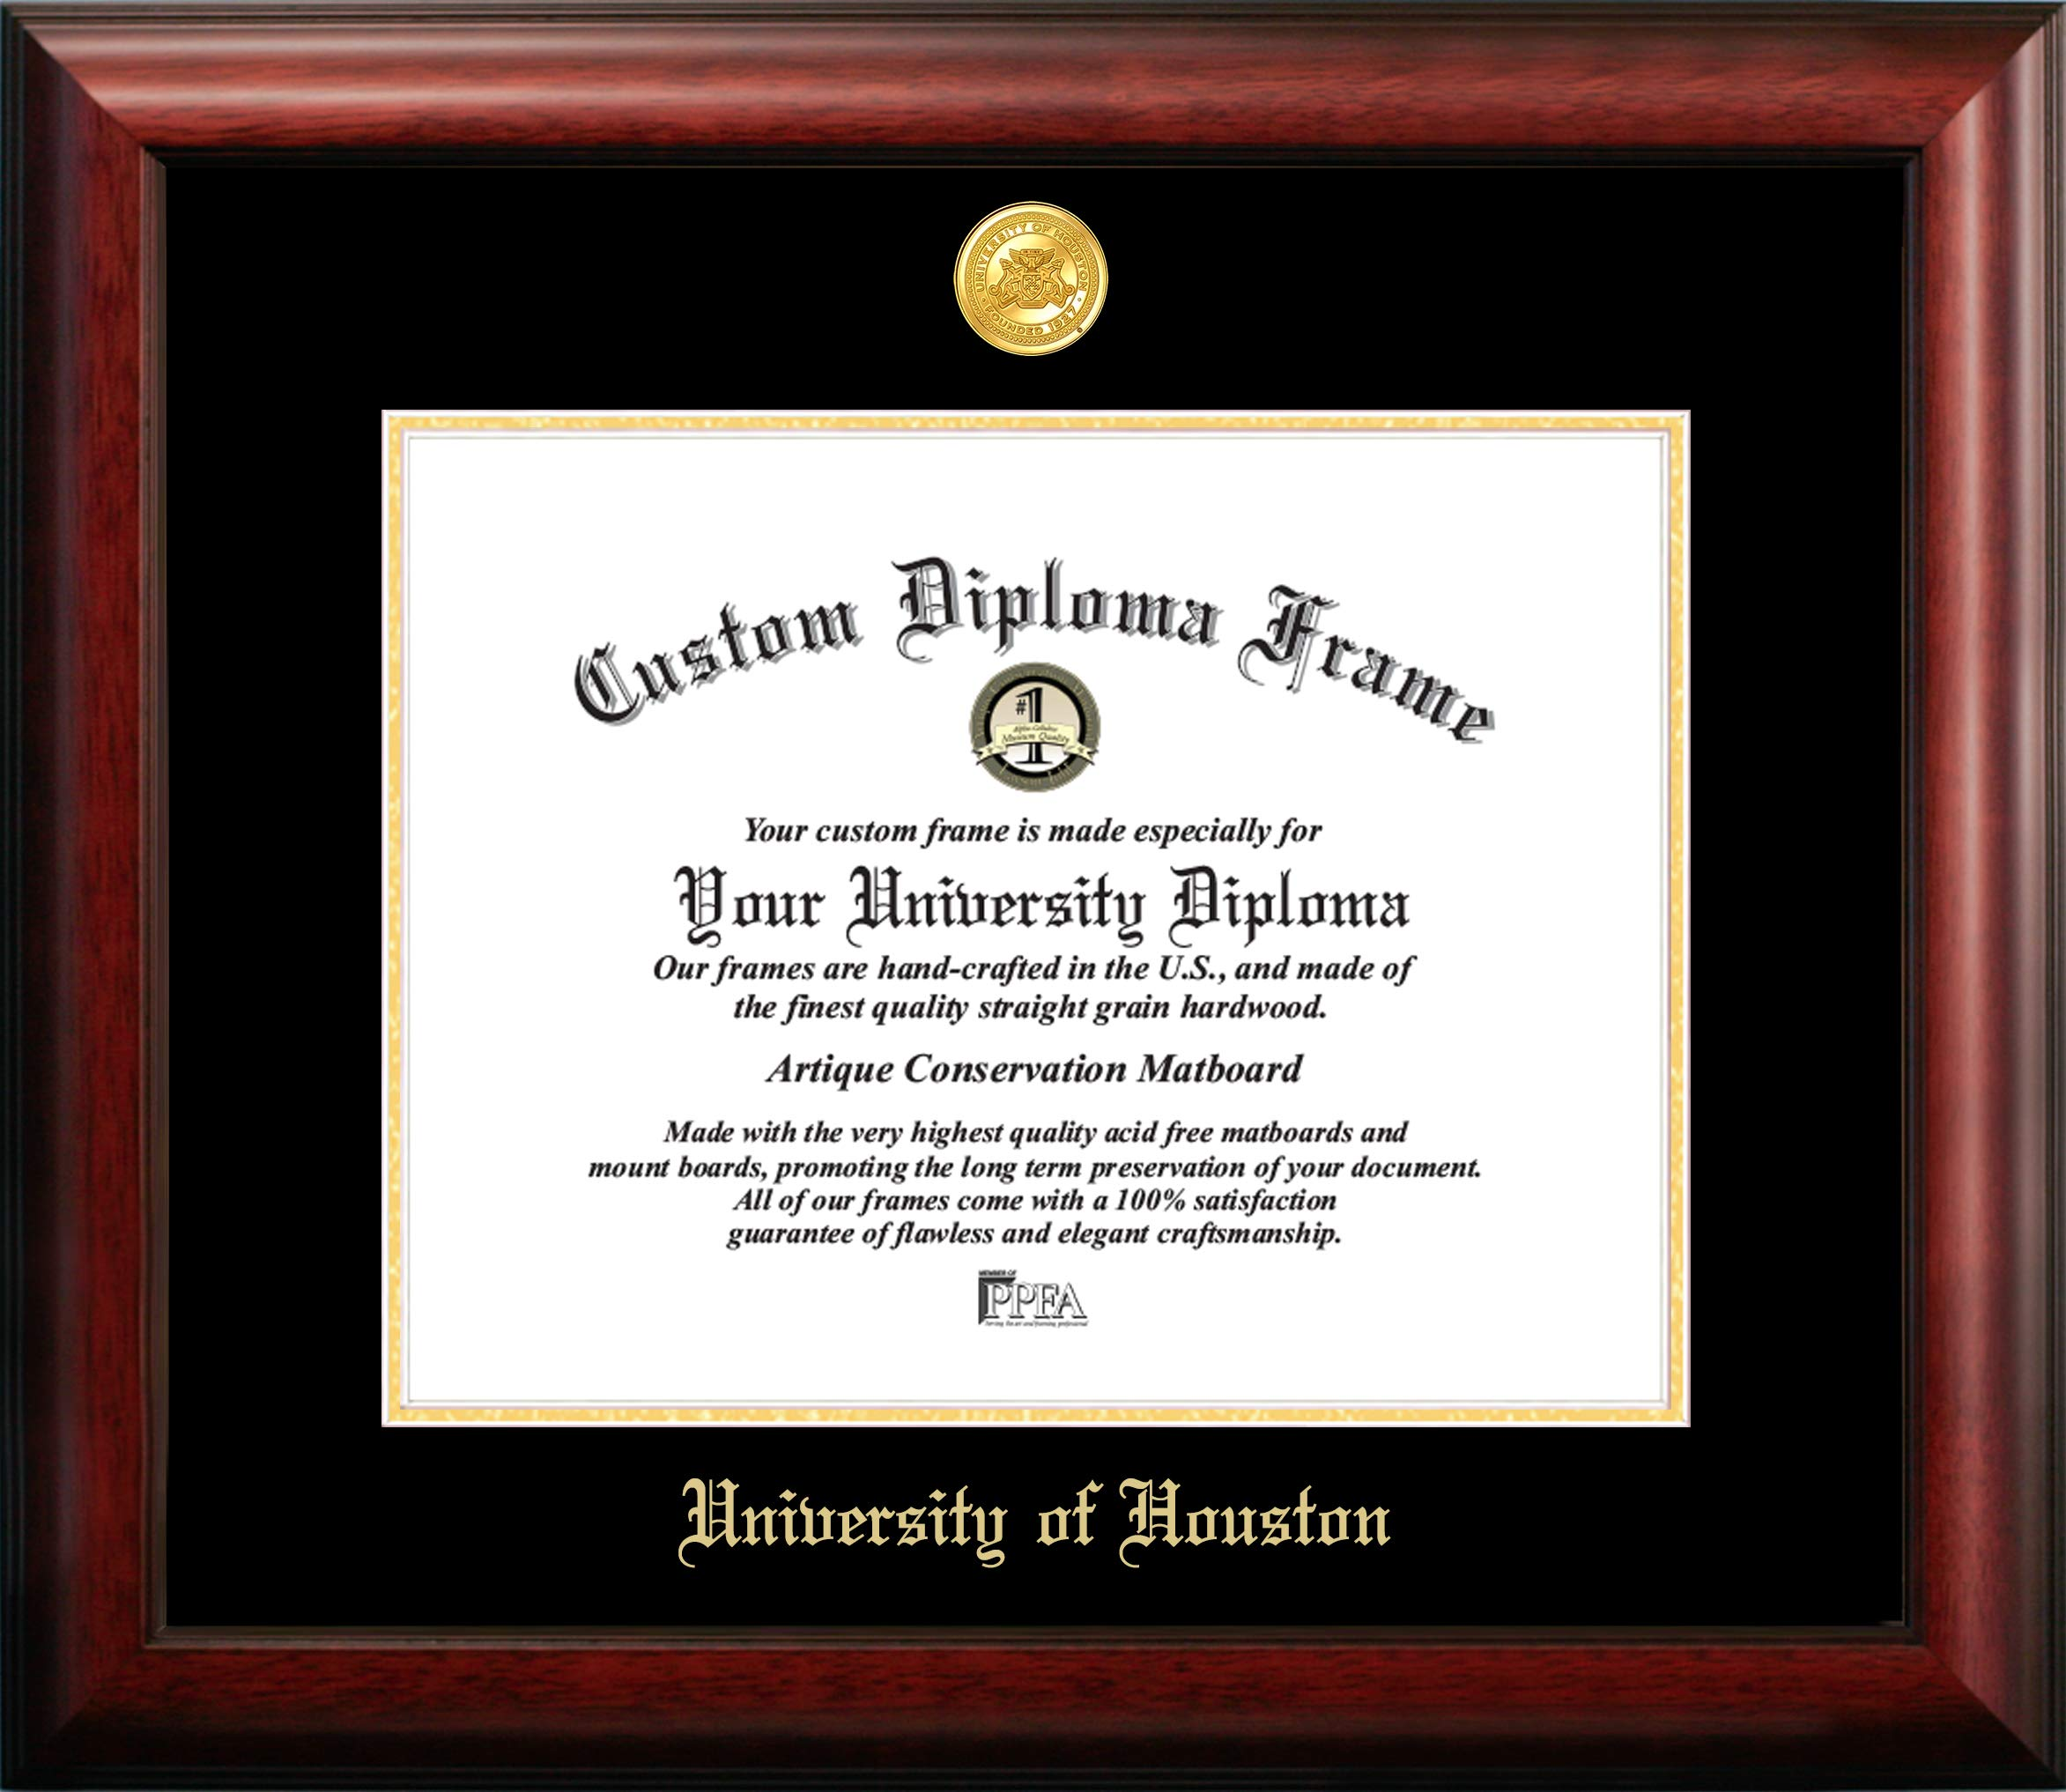 Campus Images University of Houston Gold Embossed Diploma Frame